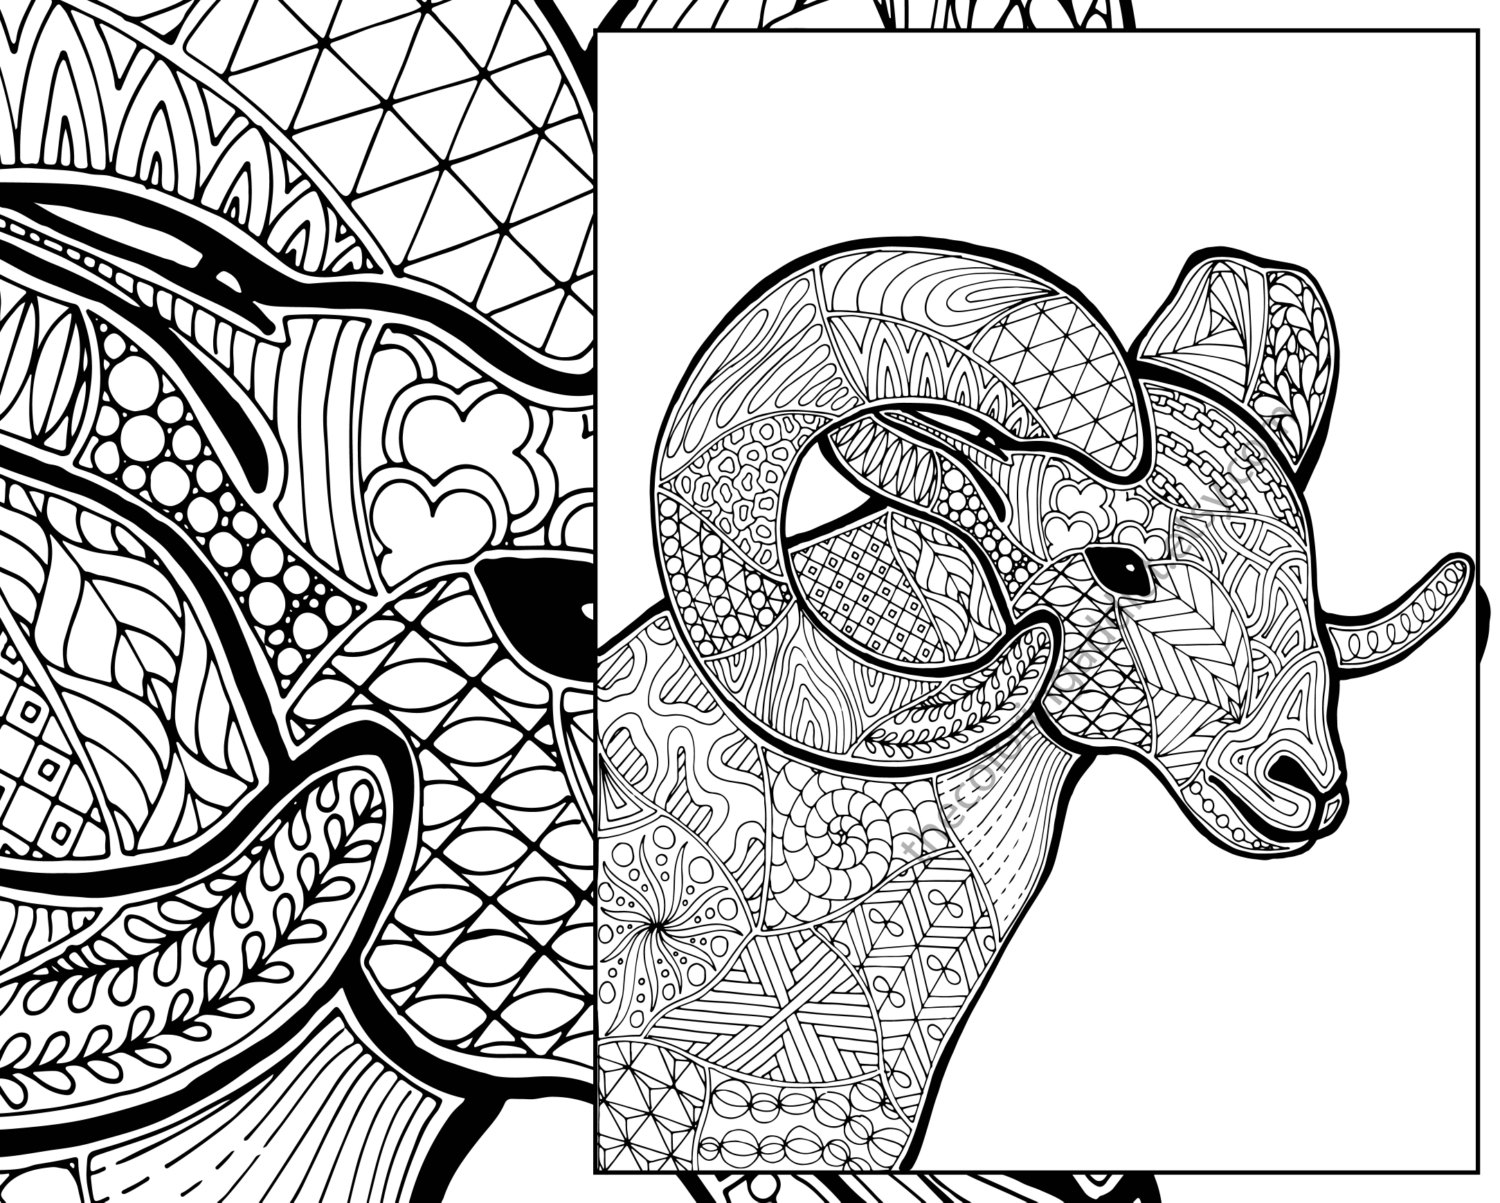 Animal Drawing Pdf at GetDrawings.com | Free for personal use Animal ...